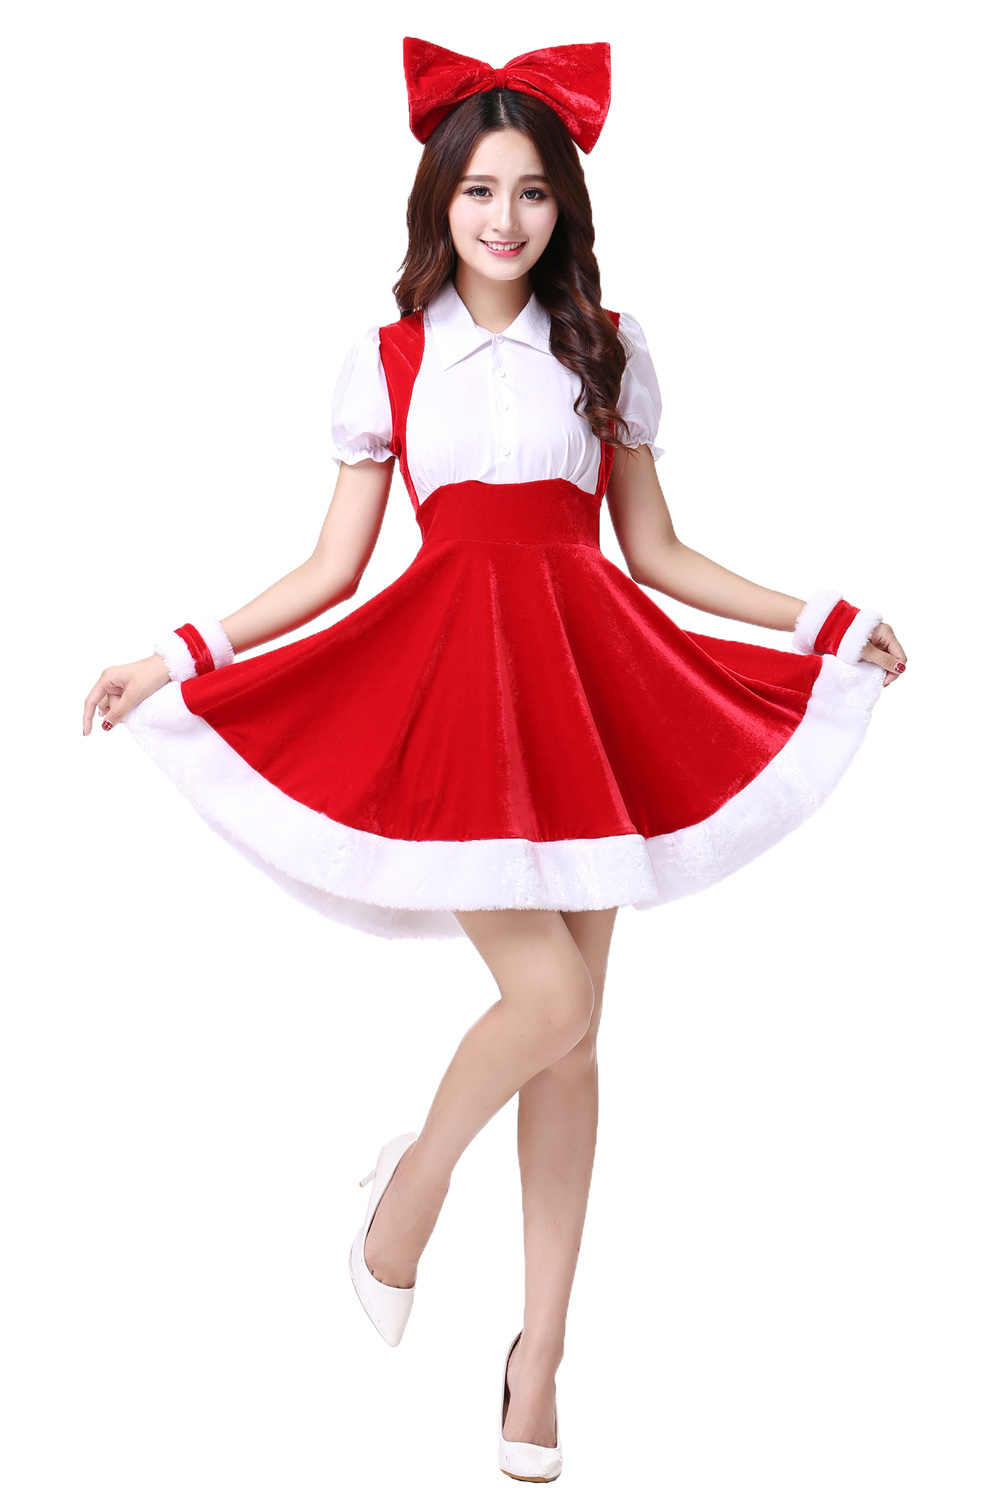 3389872980b Detail Feedback Questions about Mrs Santa Dress Christmas Sweetheart Sexy  Adult Santa Claus Mini Party Cosplay Costume Women on Aliexpress.com